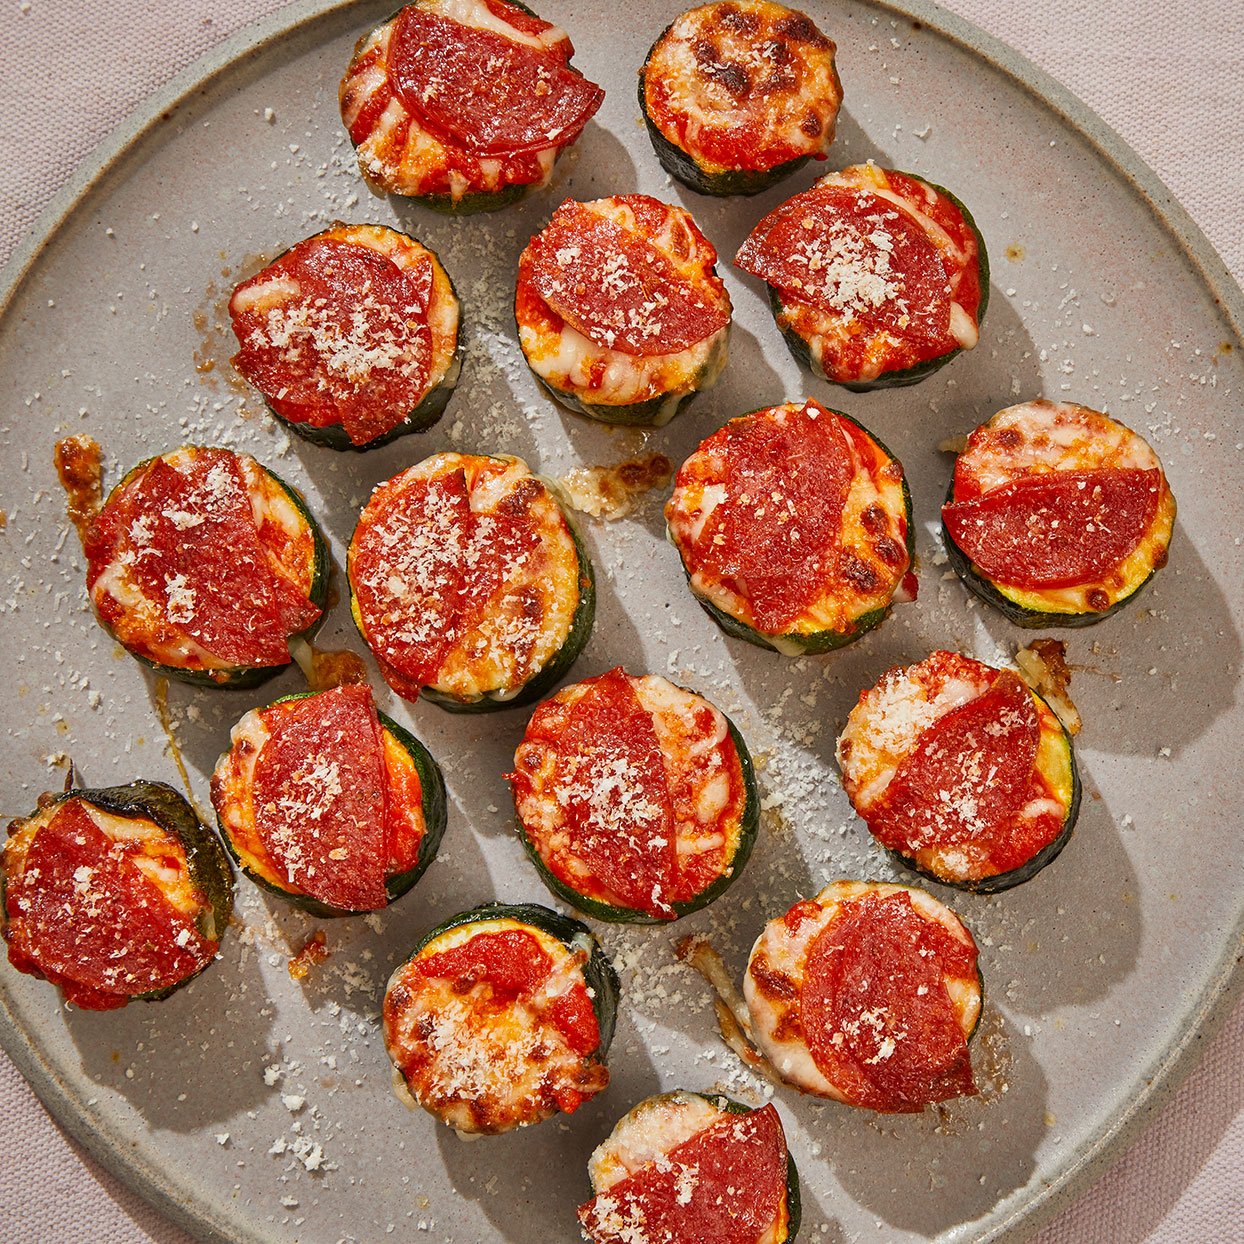 Think of these zucchini pizza bites as a fun gluten-free alternative to bagel bites. Be sure not to overcook the zucchini or the bites may become soggy. We like the classic pepperoni topping, but feel free to experiment with your own favorites. Source: EatingWell.com, April 2020